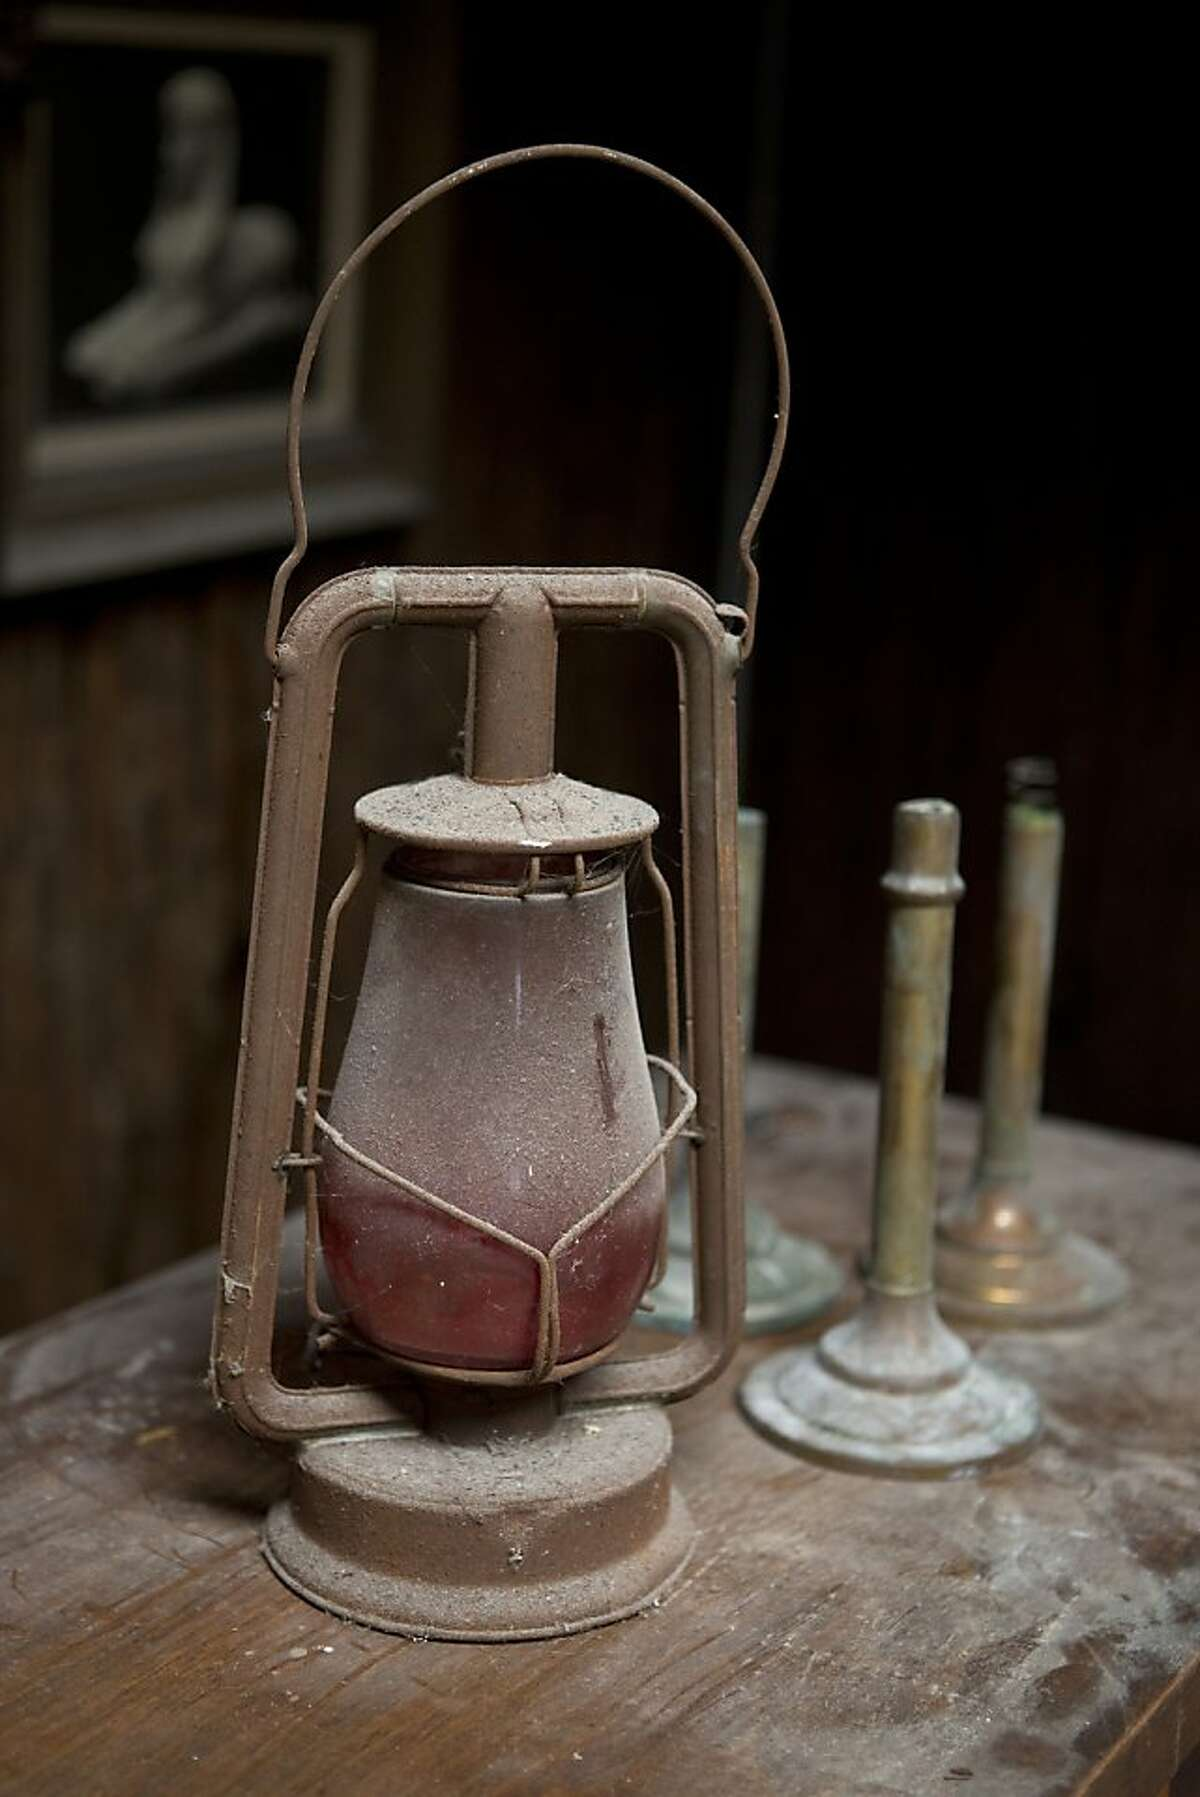 Original lanterns of the former George's Log Cabin on Thursday, May 16, 2013 in San Francisco, Calif.